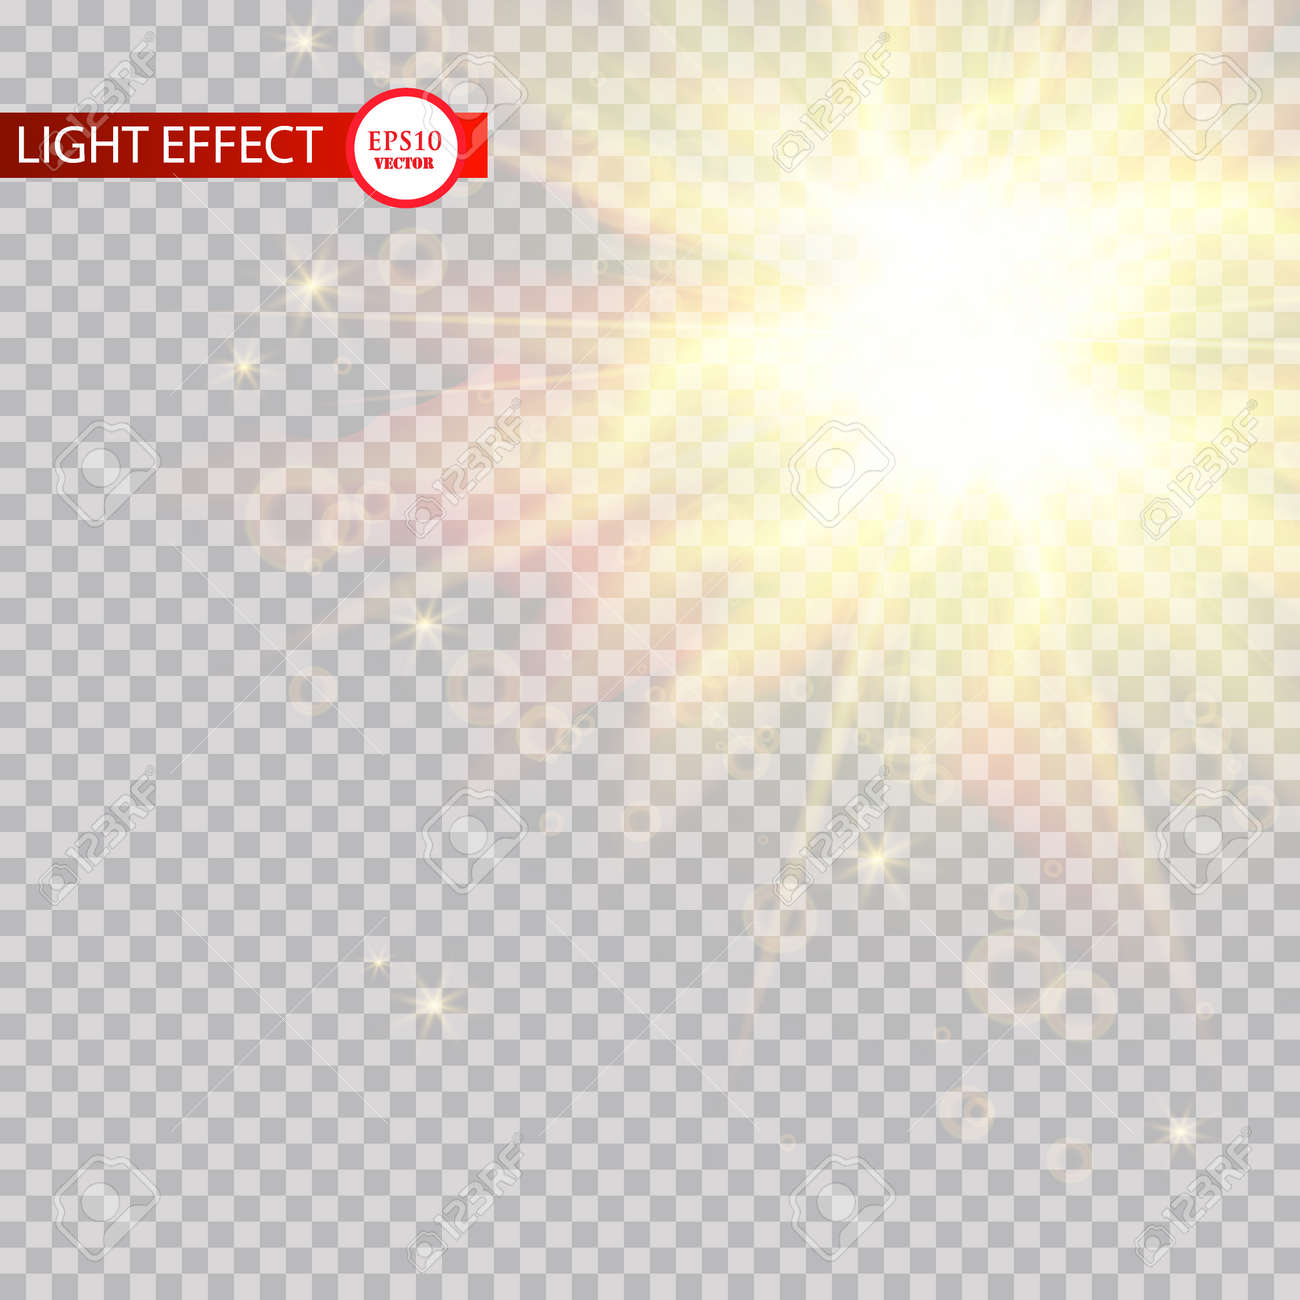 Lens Flare Light Effect Sun Rays With Beams Isolated On Transparent Background Vector Illustration